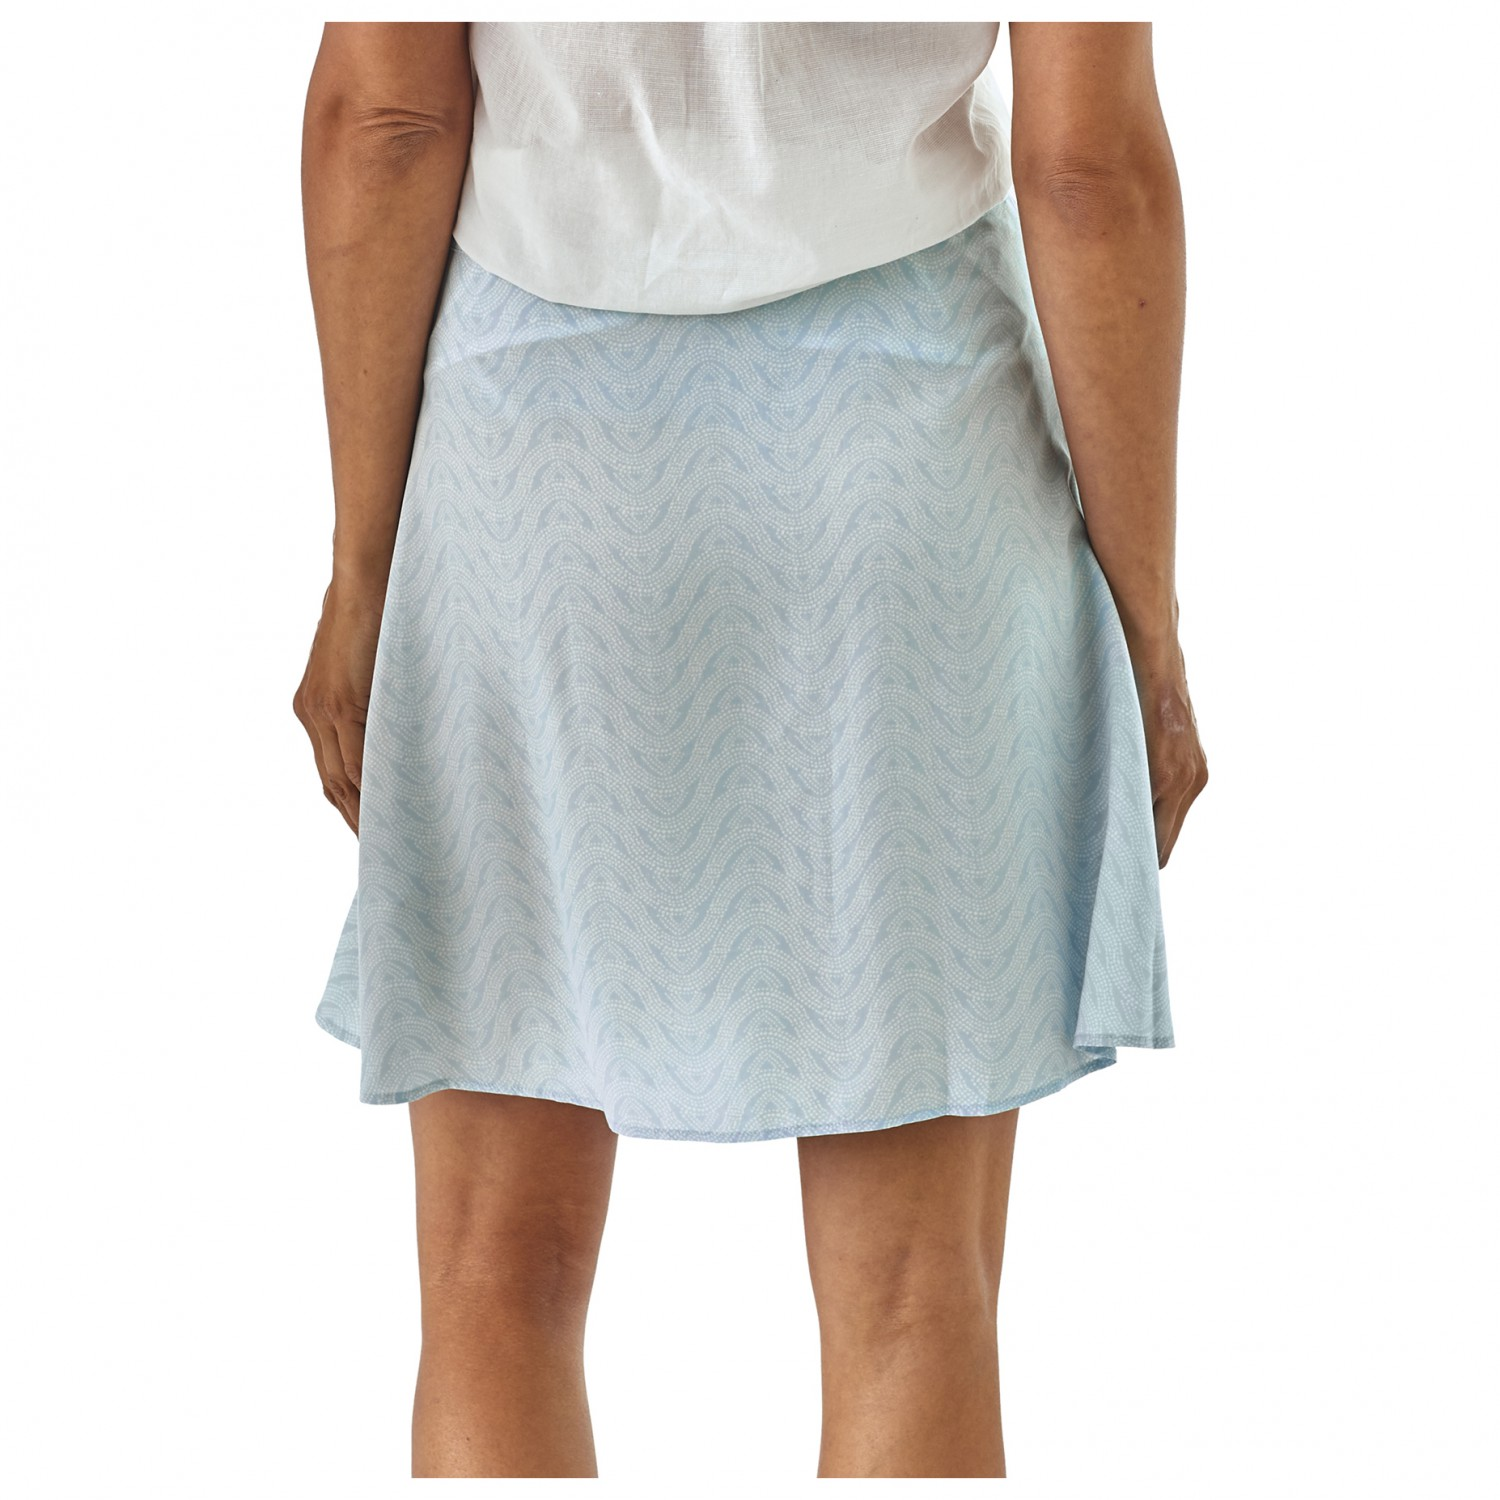 aac780d0a Patagonia June Lake Skirt - Skirt Women's | Free UK Delivery ...